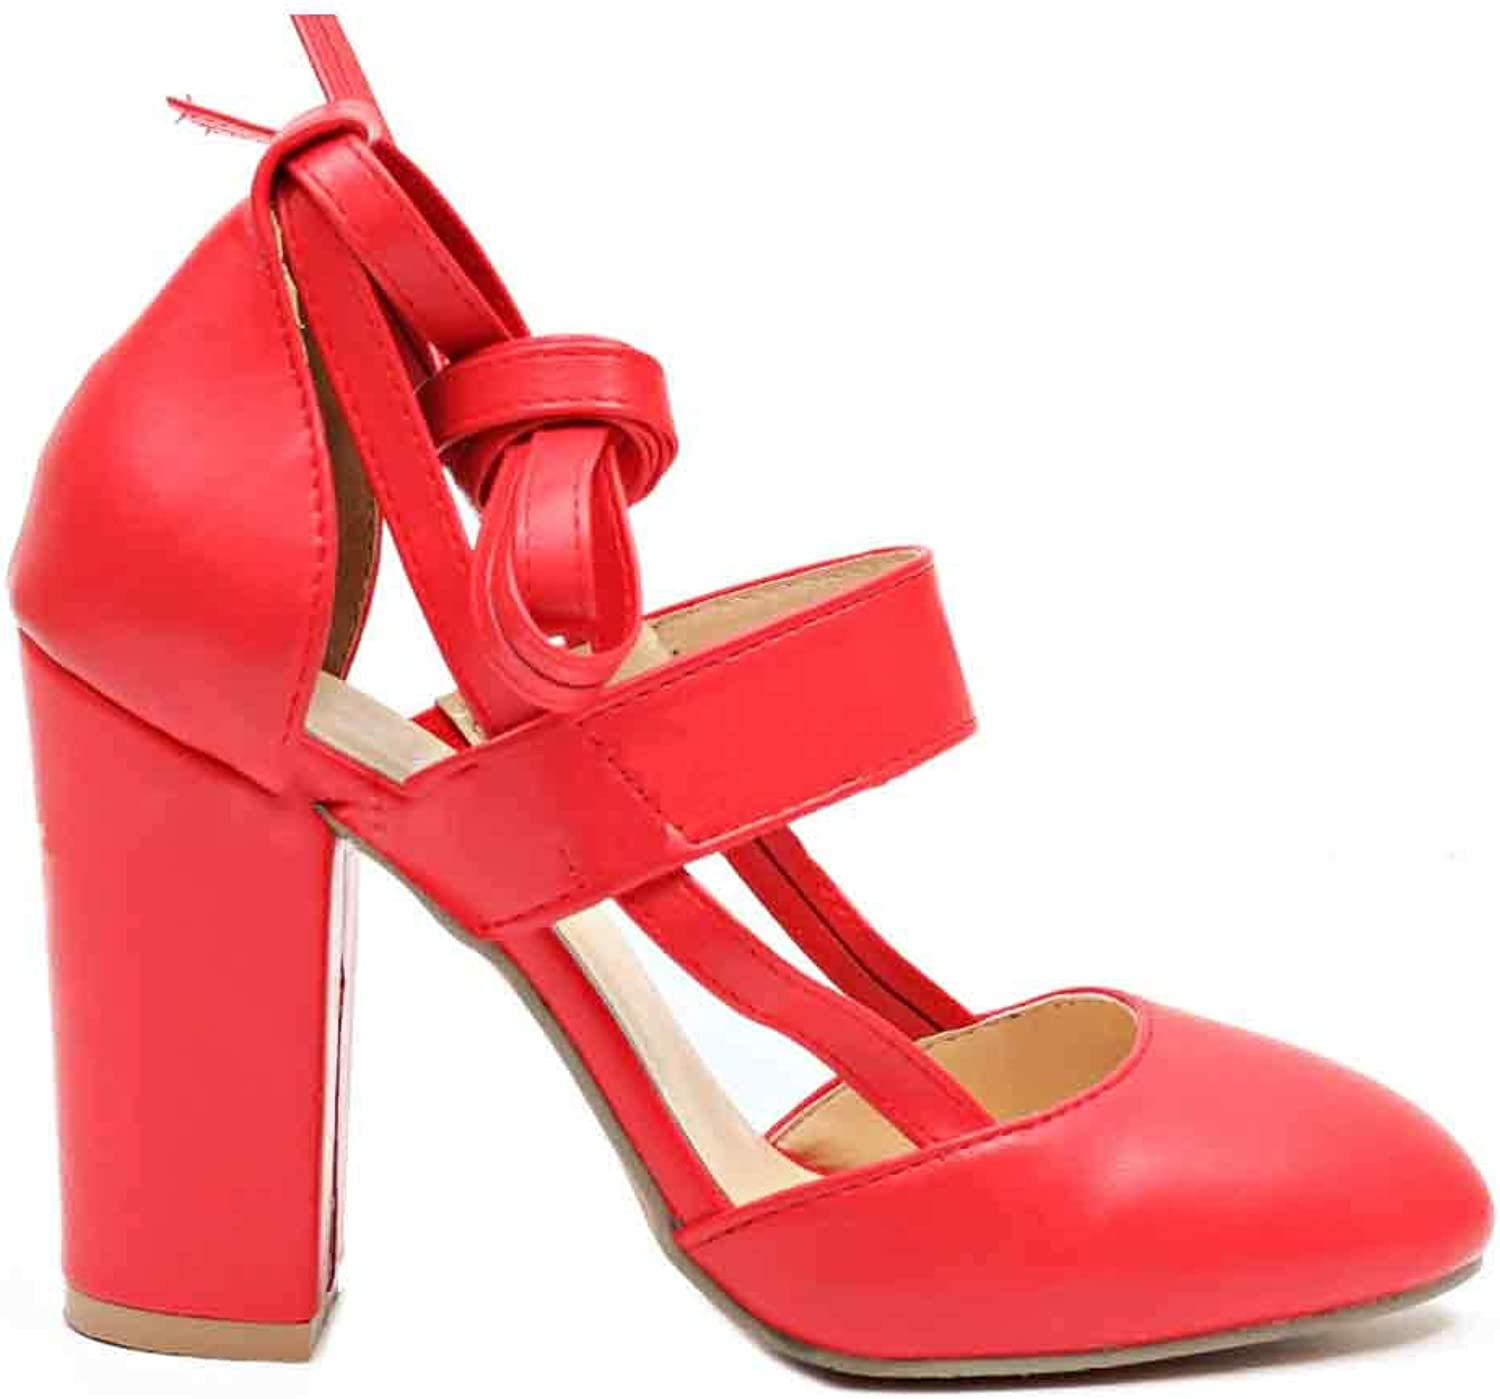 Fulision Female Solid color Round Toe Back Strappy Thicken High Heeled shoes